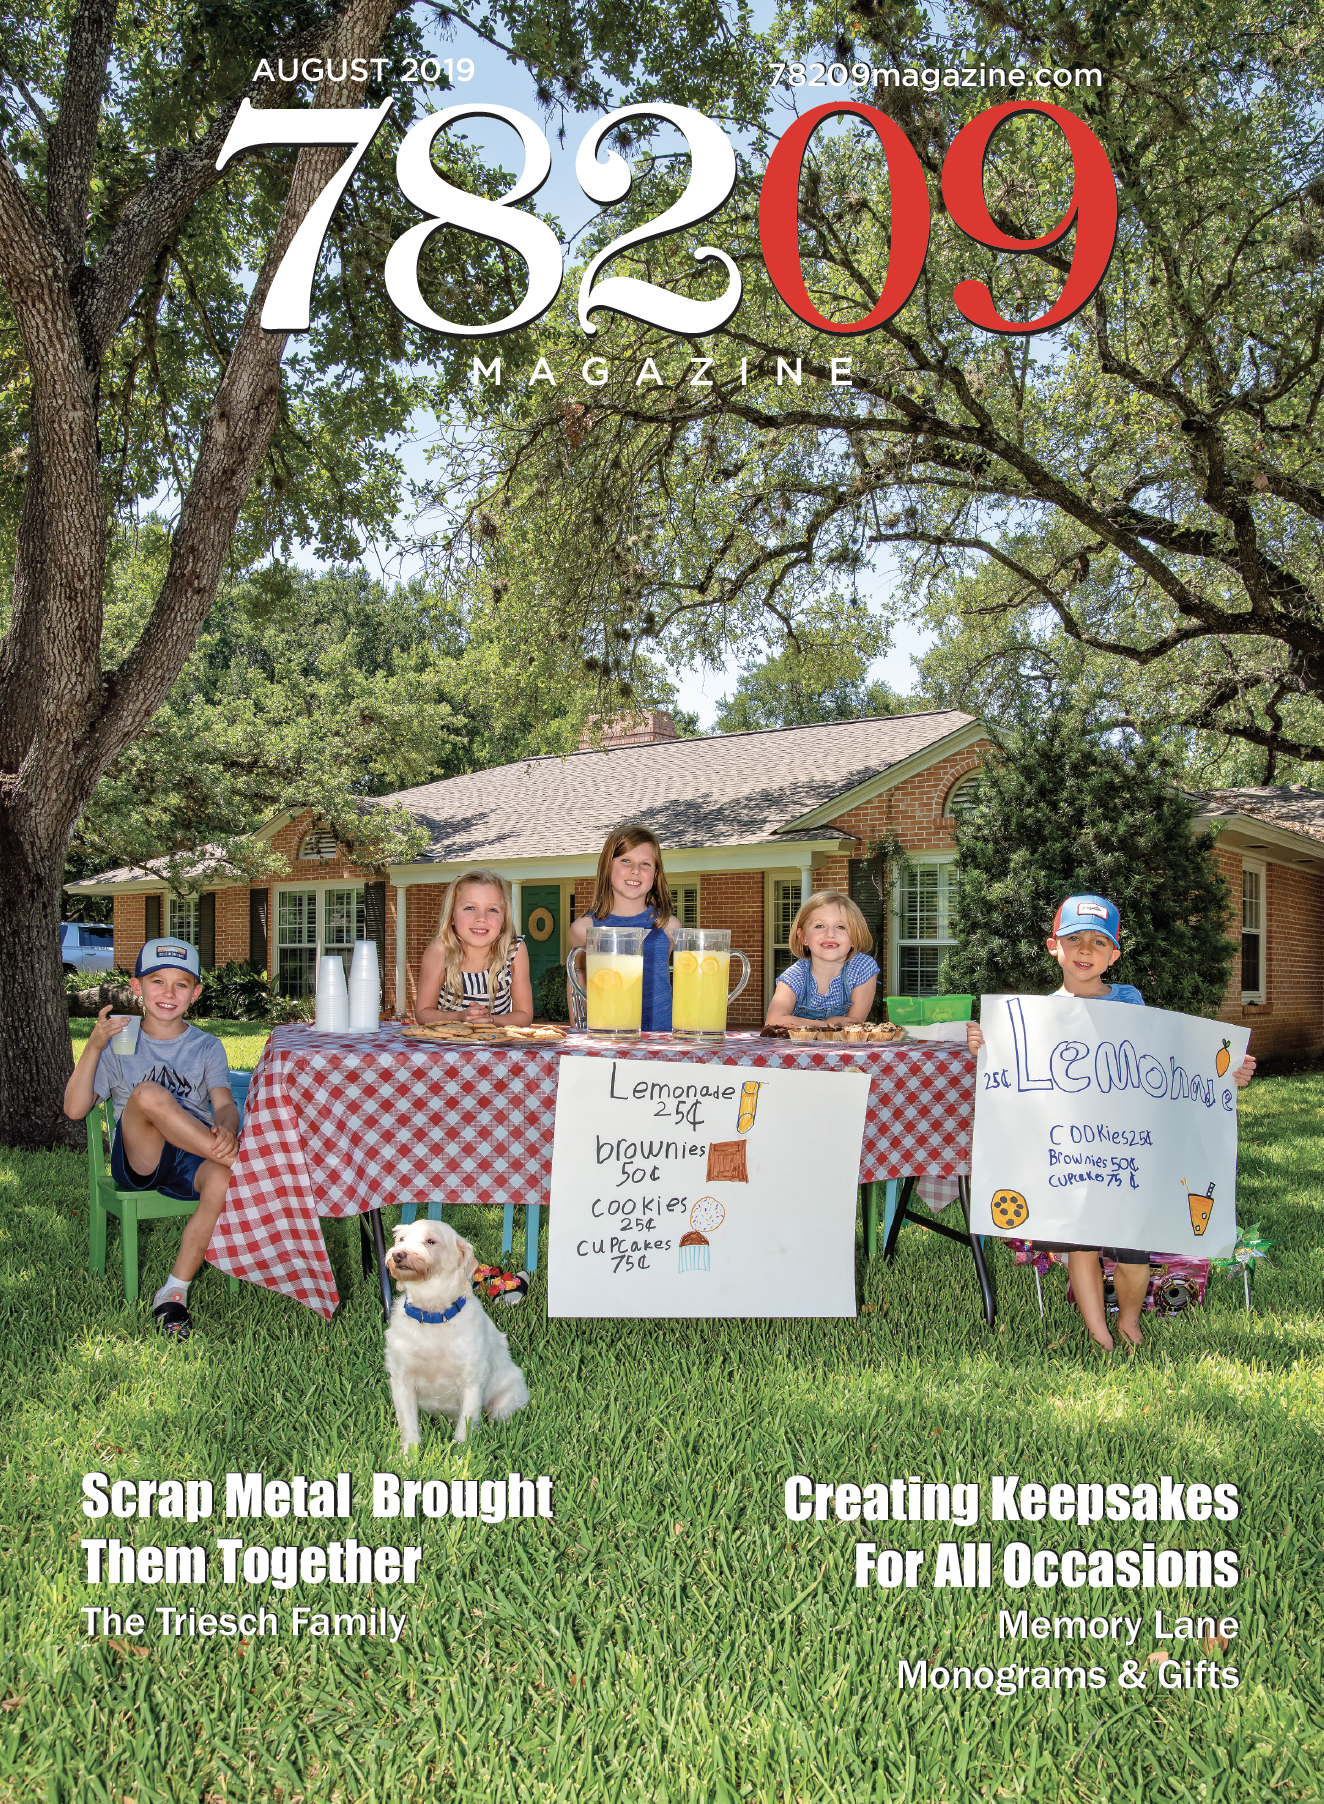 Cover of the July 2019 issue of 78209 Magazine